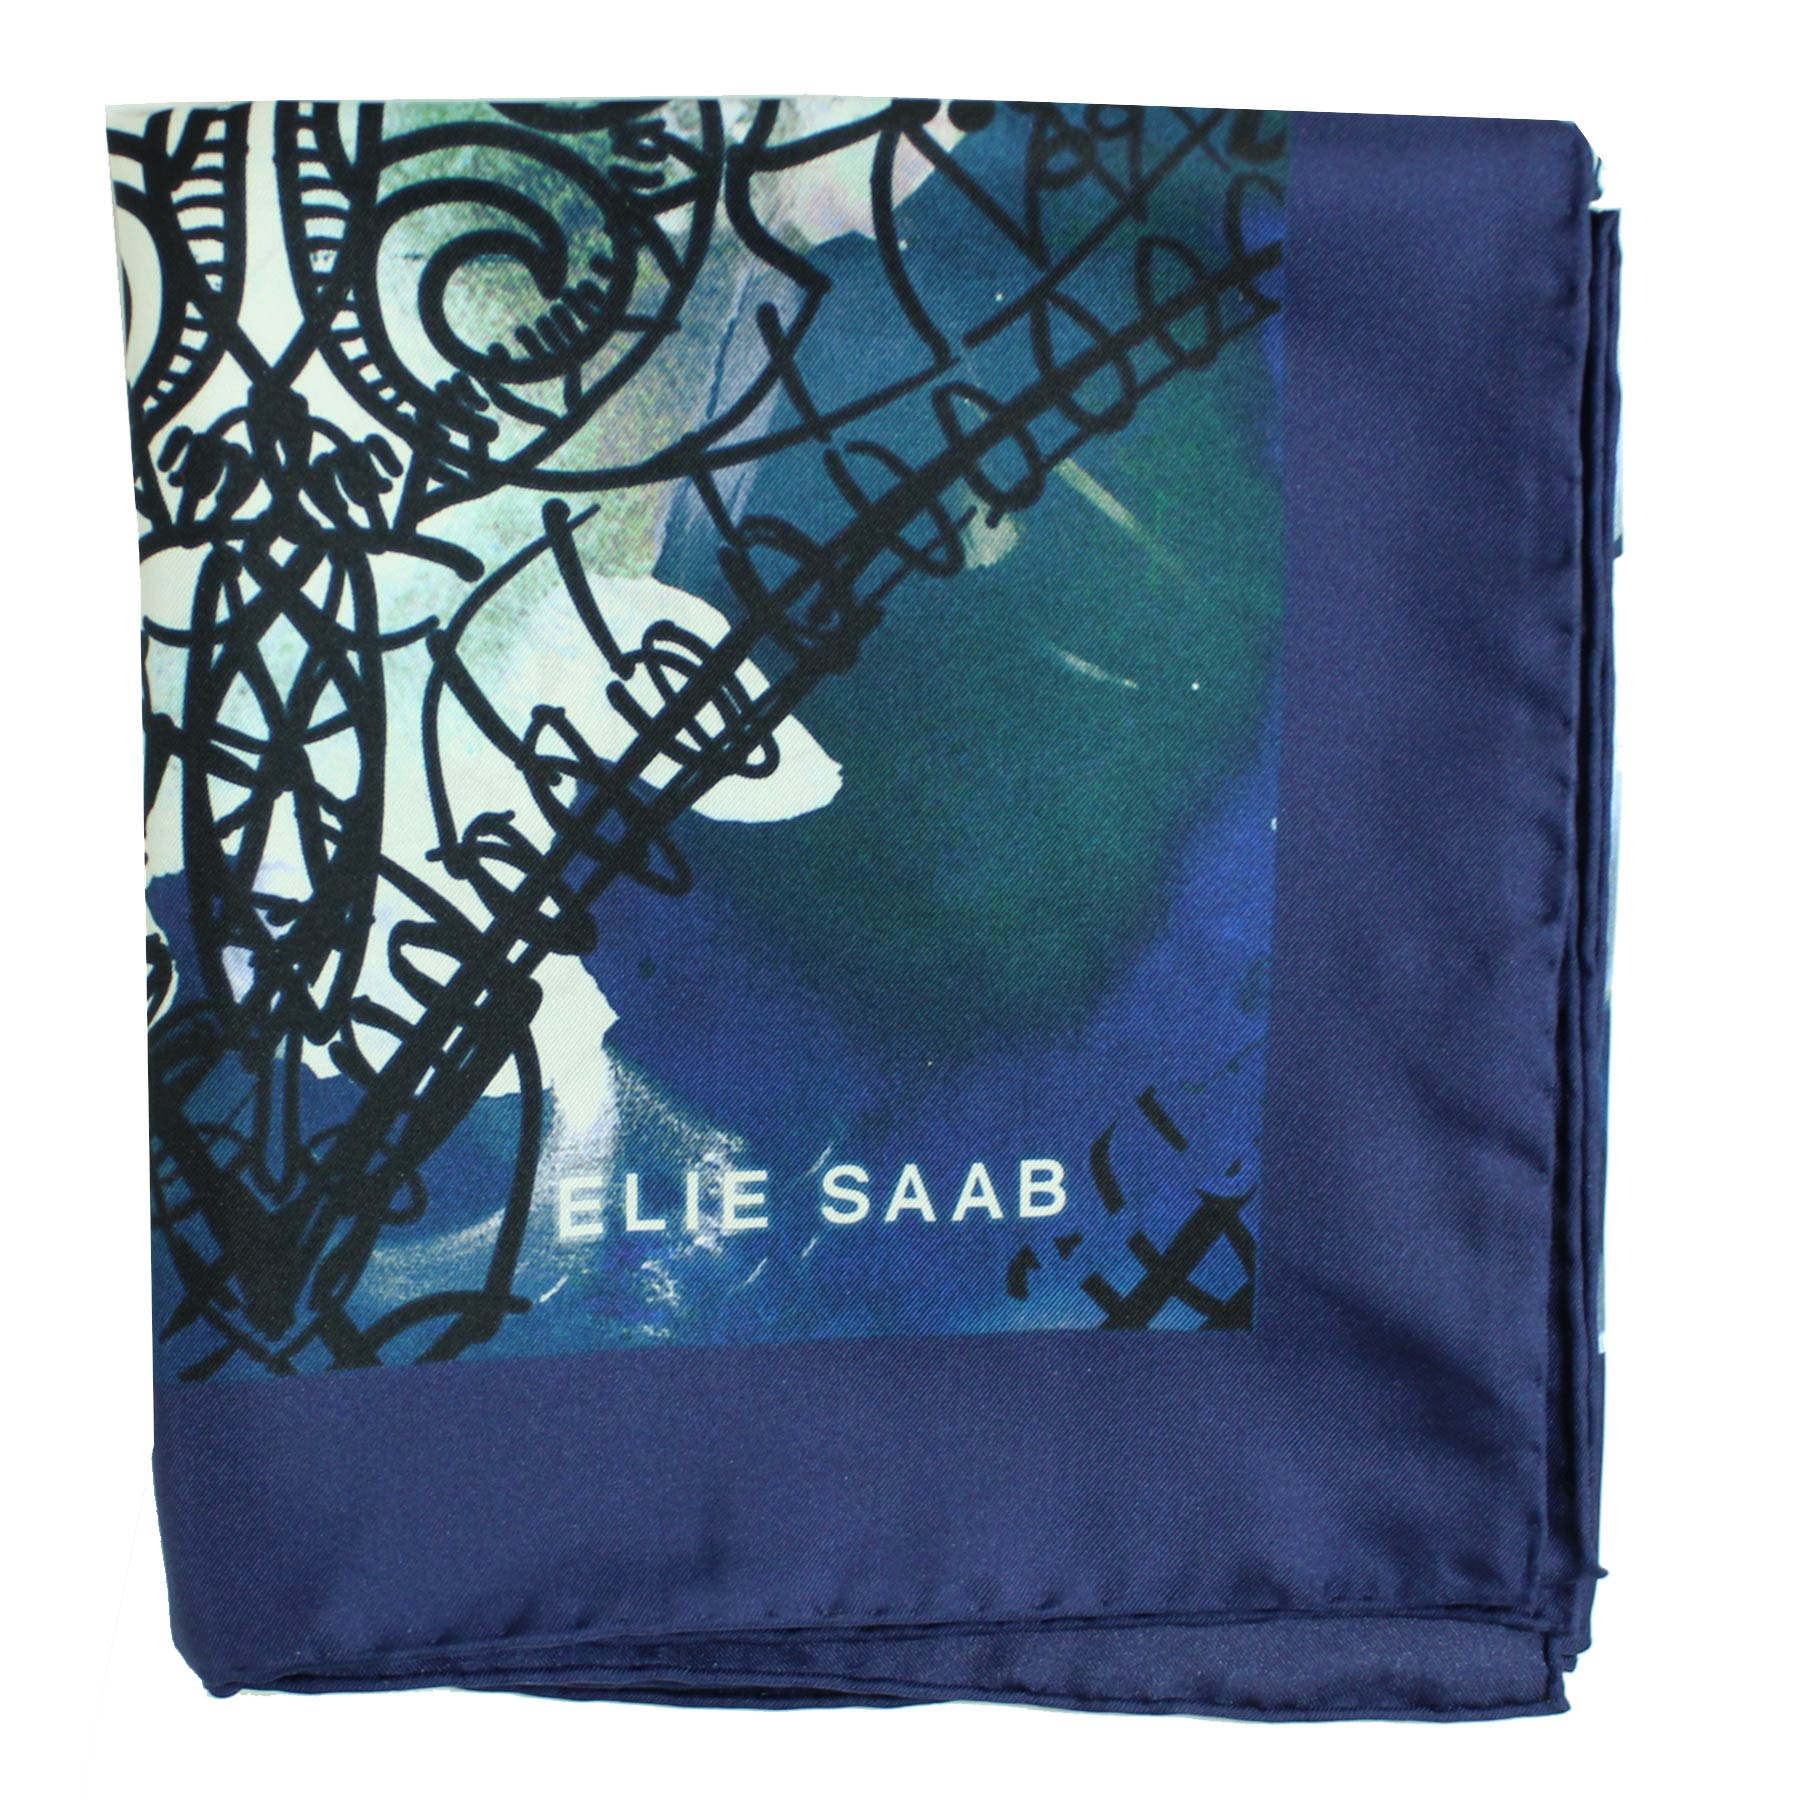 Elie Saab Scarf Midnight Blue Roses Floral & Heart - Twill Silk Square Scarf